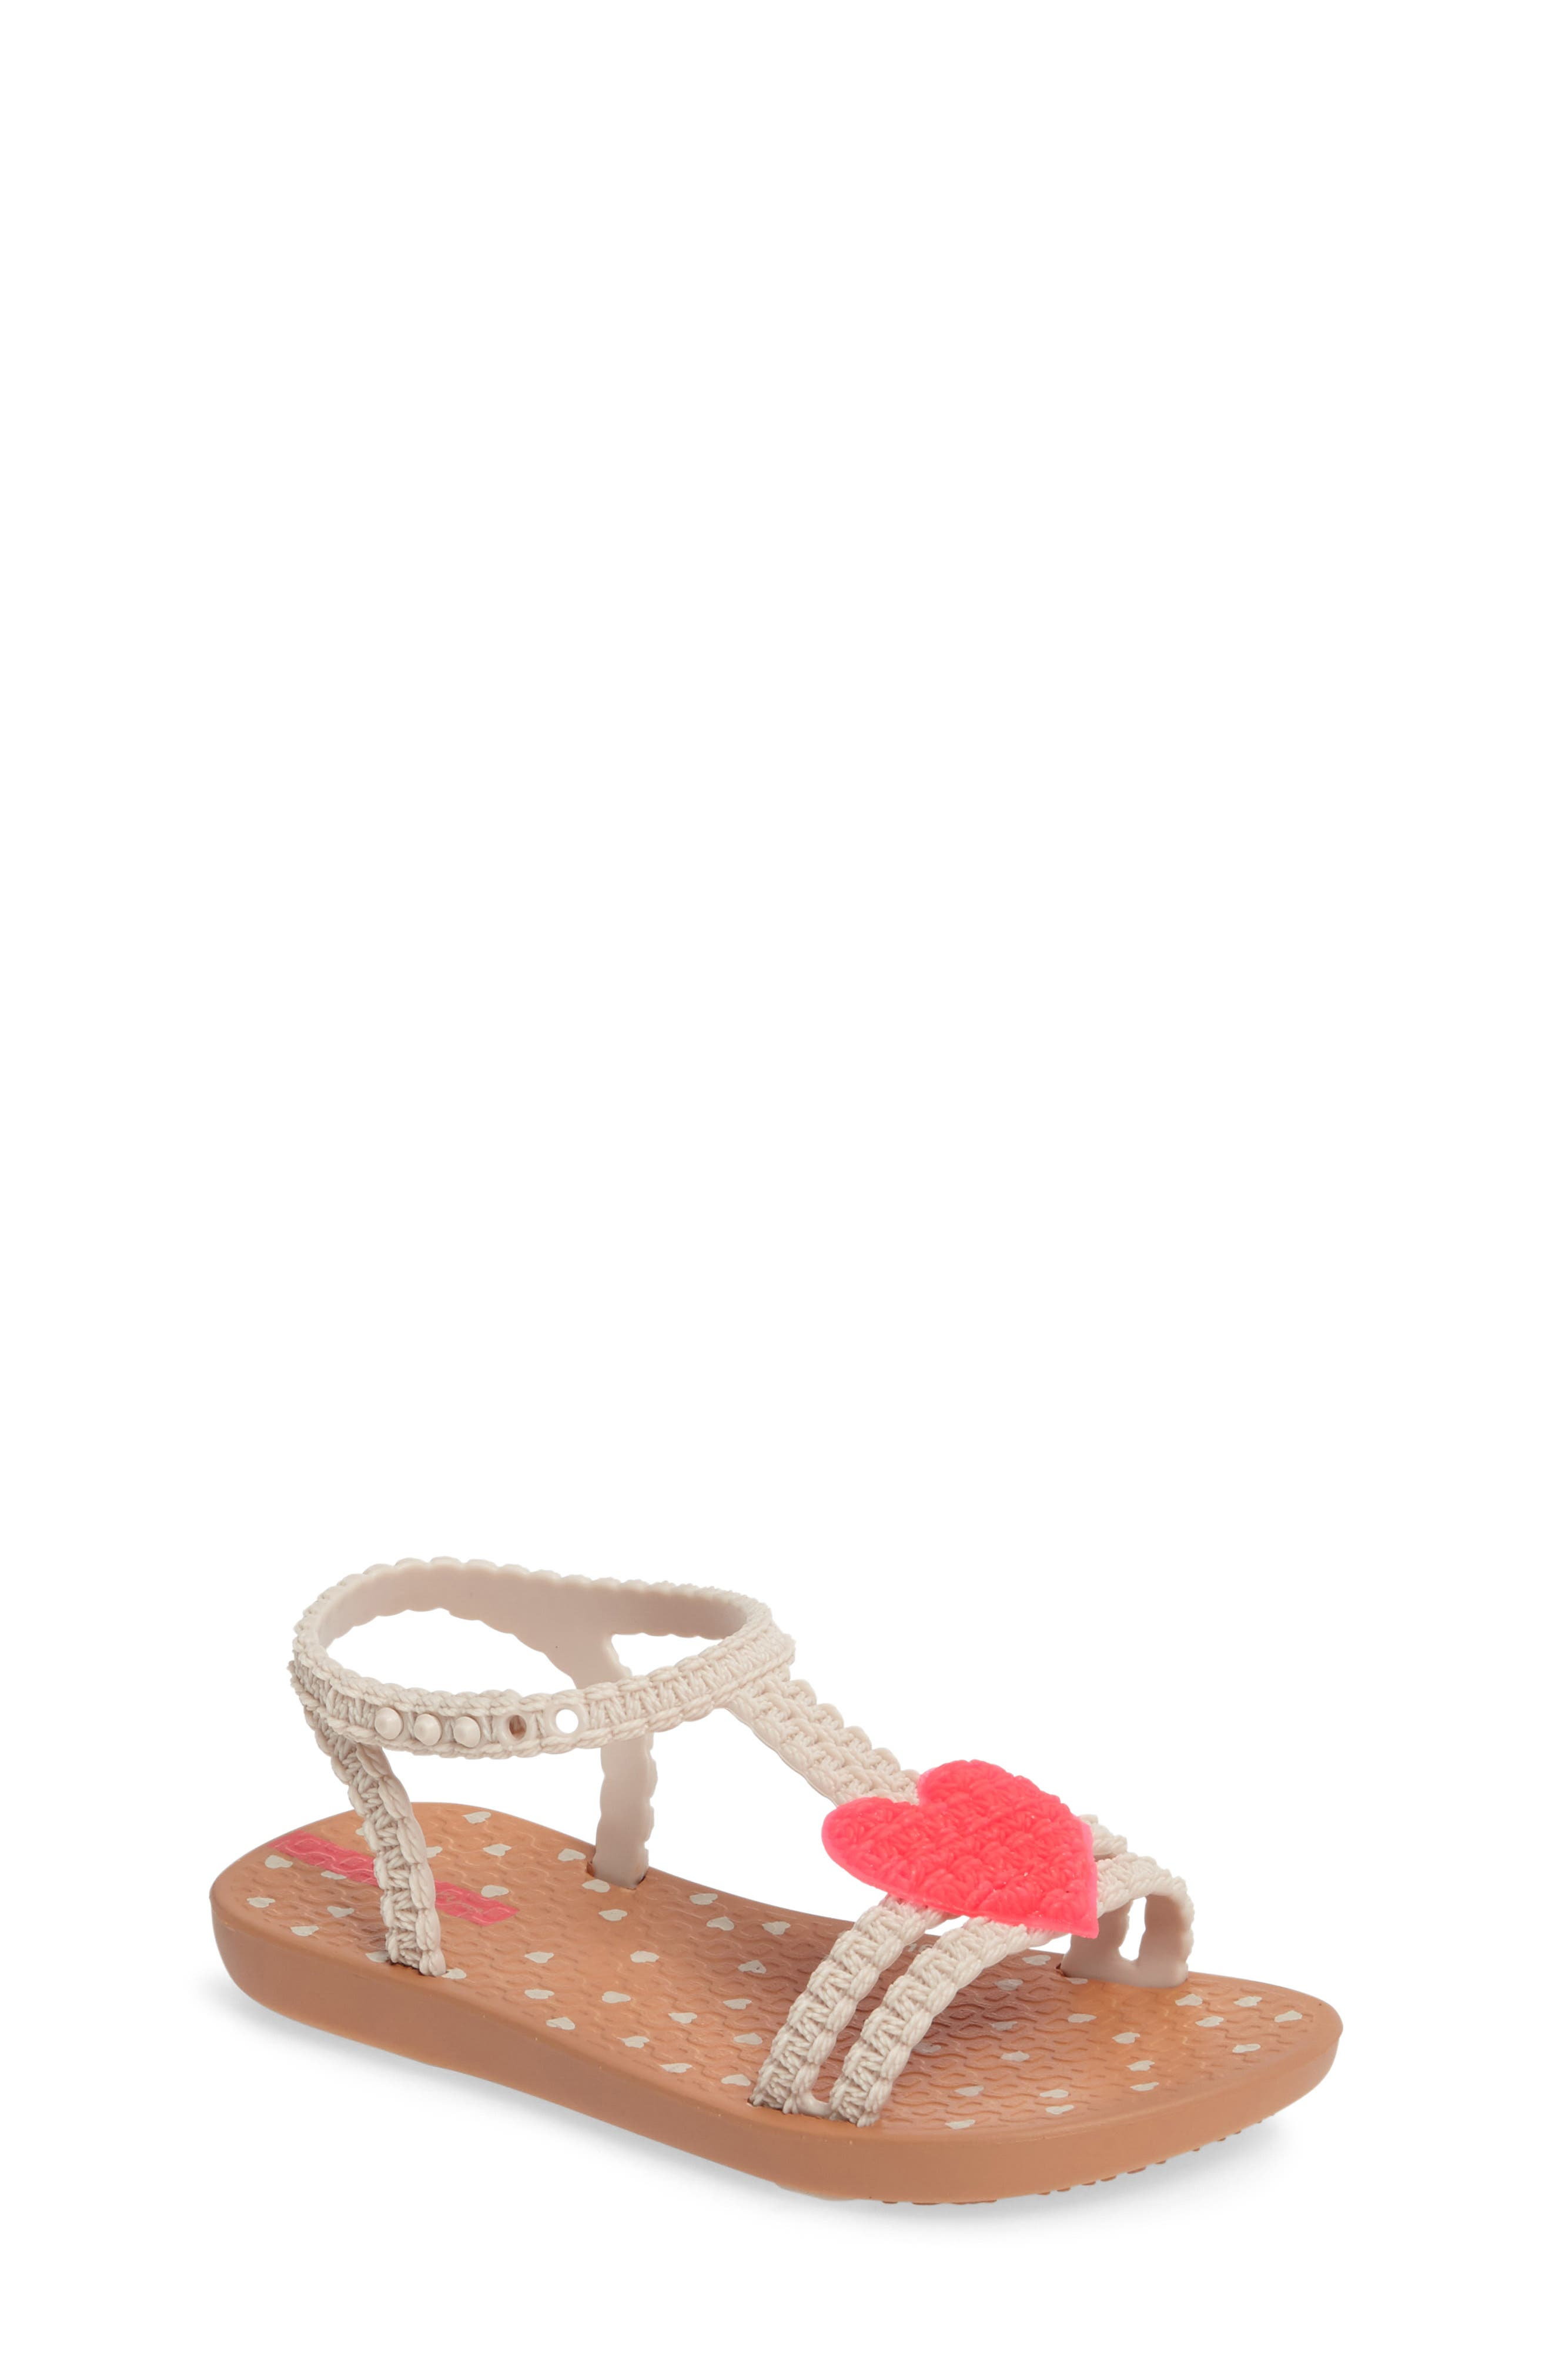 Ipanema My First Ipanema Sandal (Walker & Toddler)